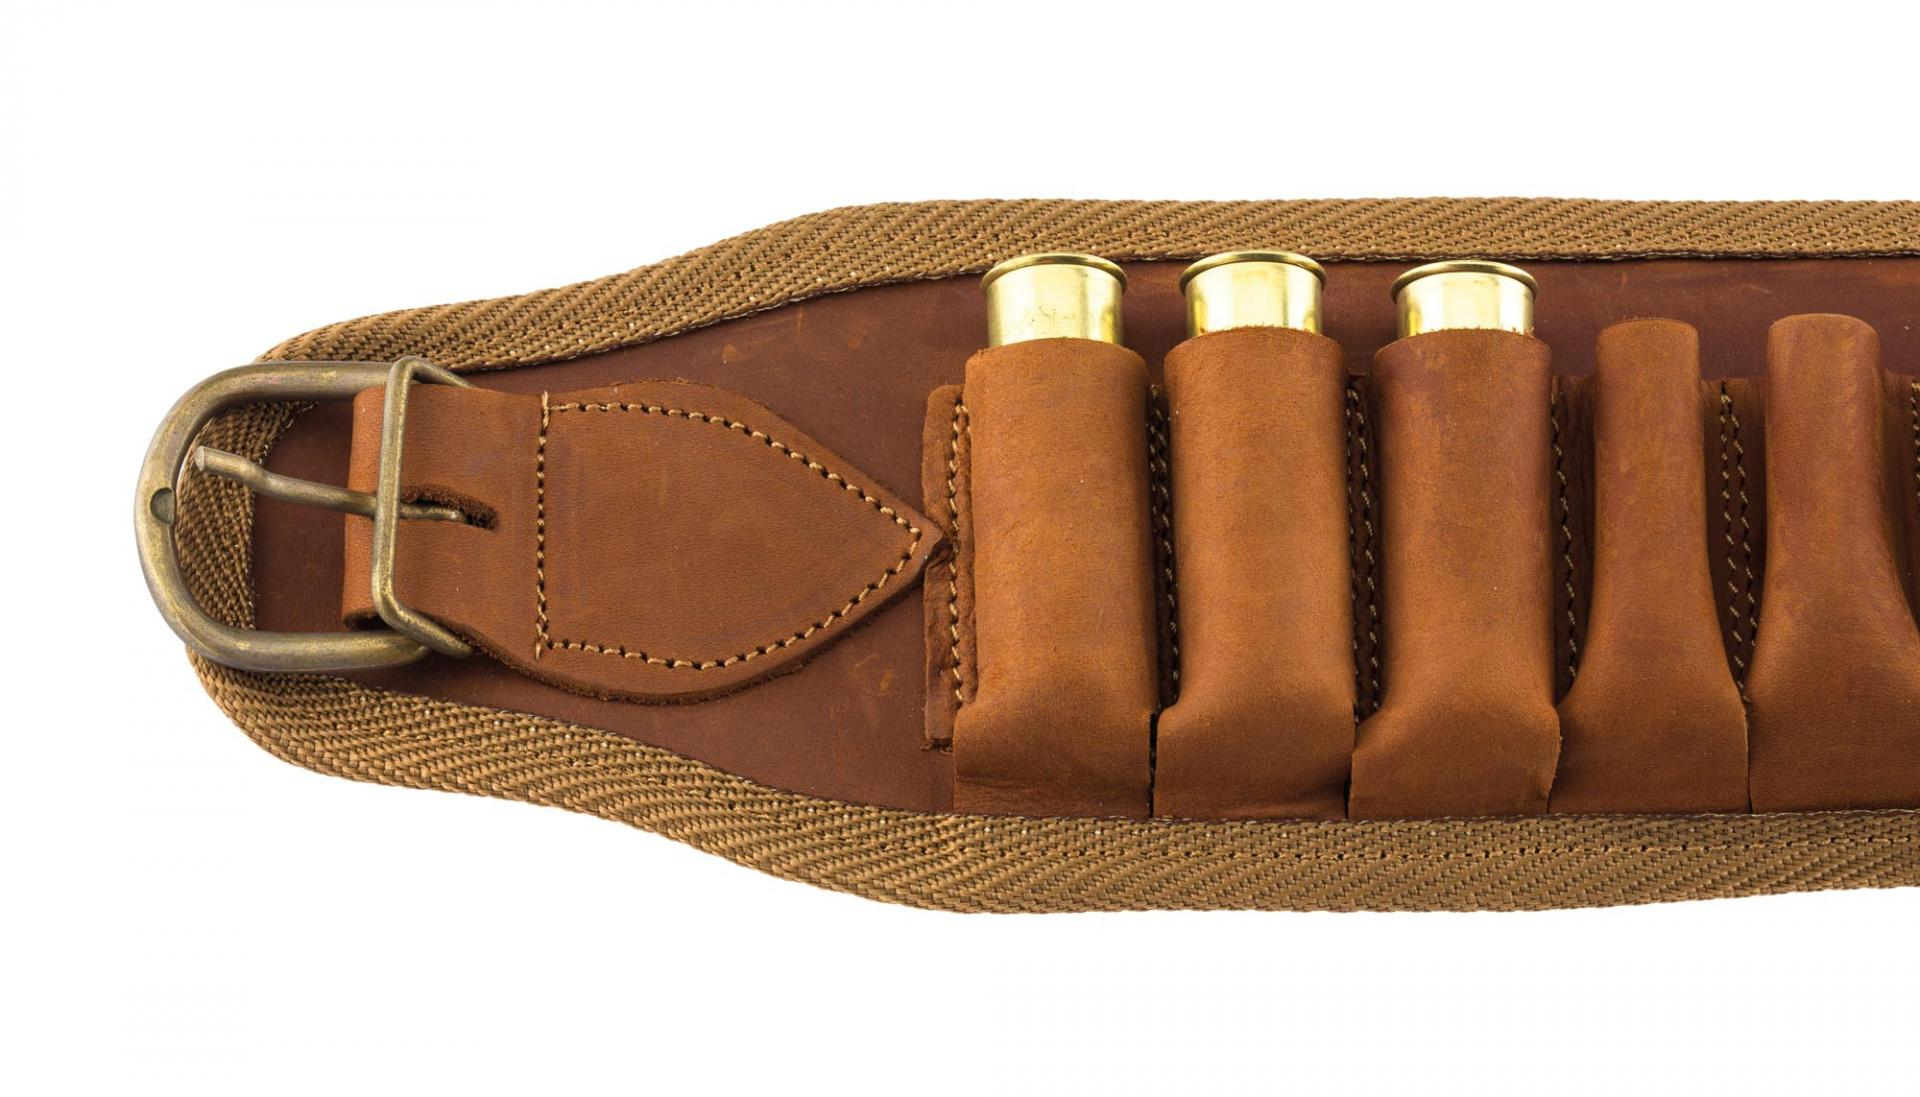 Cartouchie re country sellerie daim croupon calibre cartouche chasse chasseur